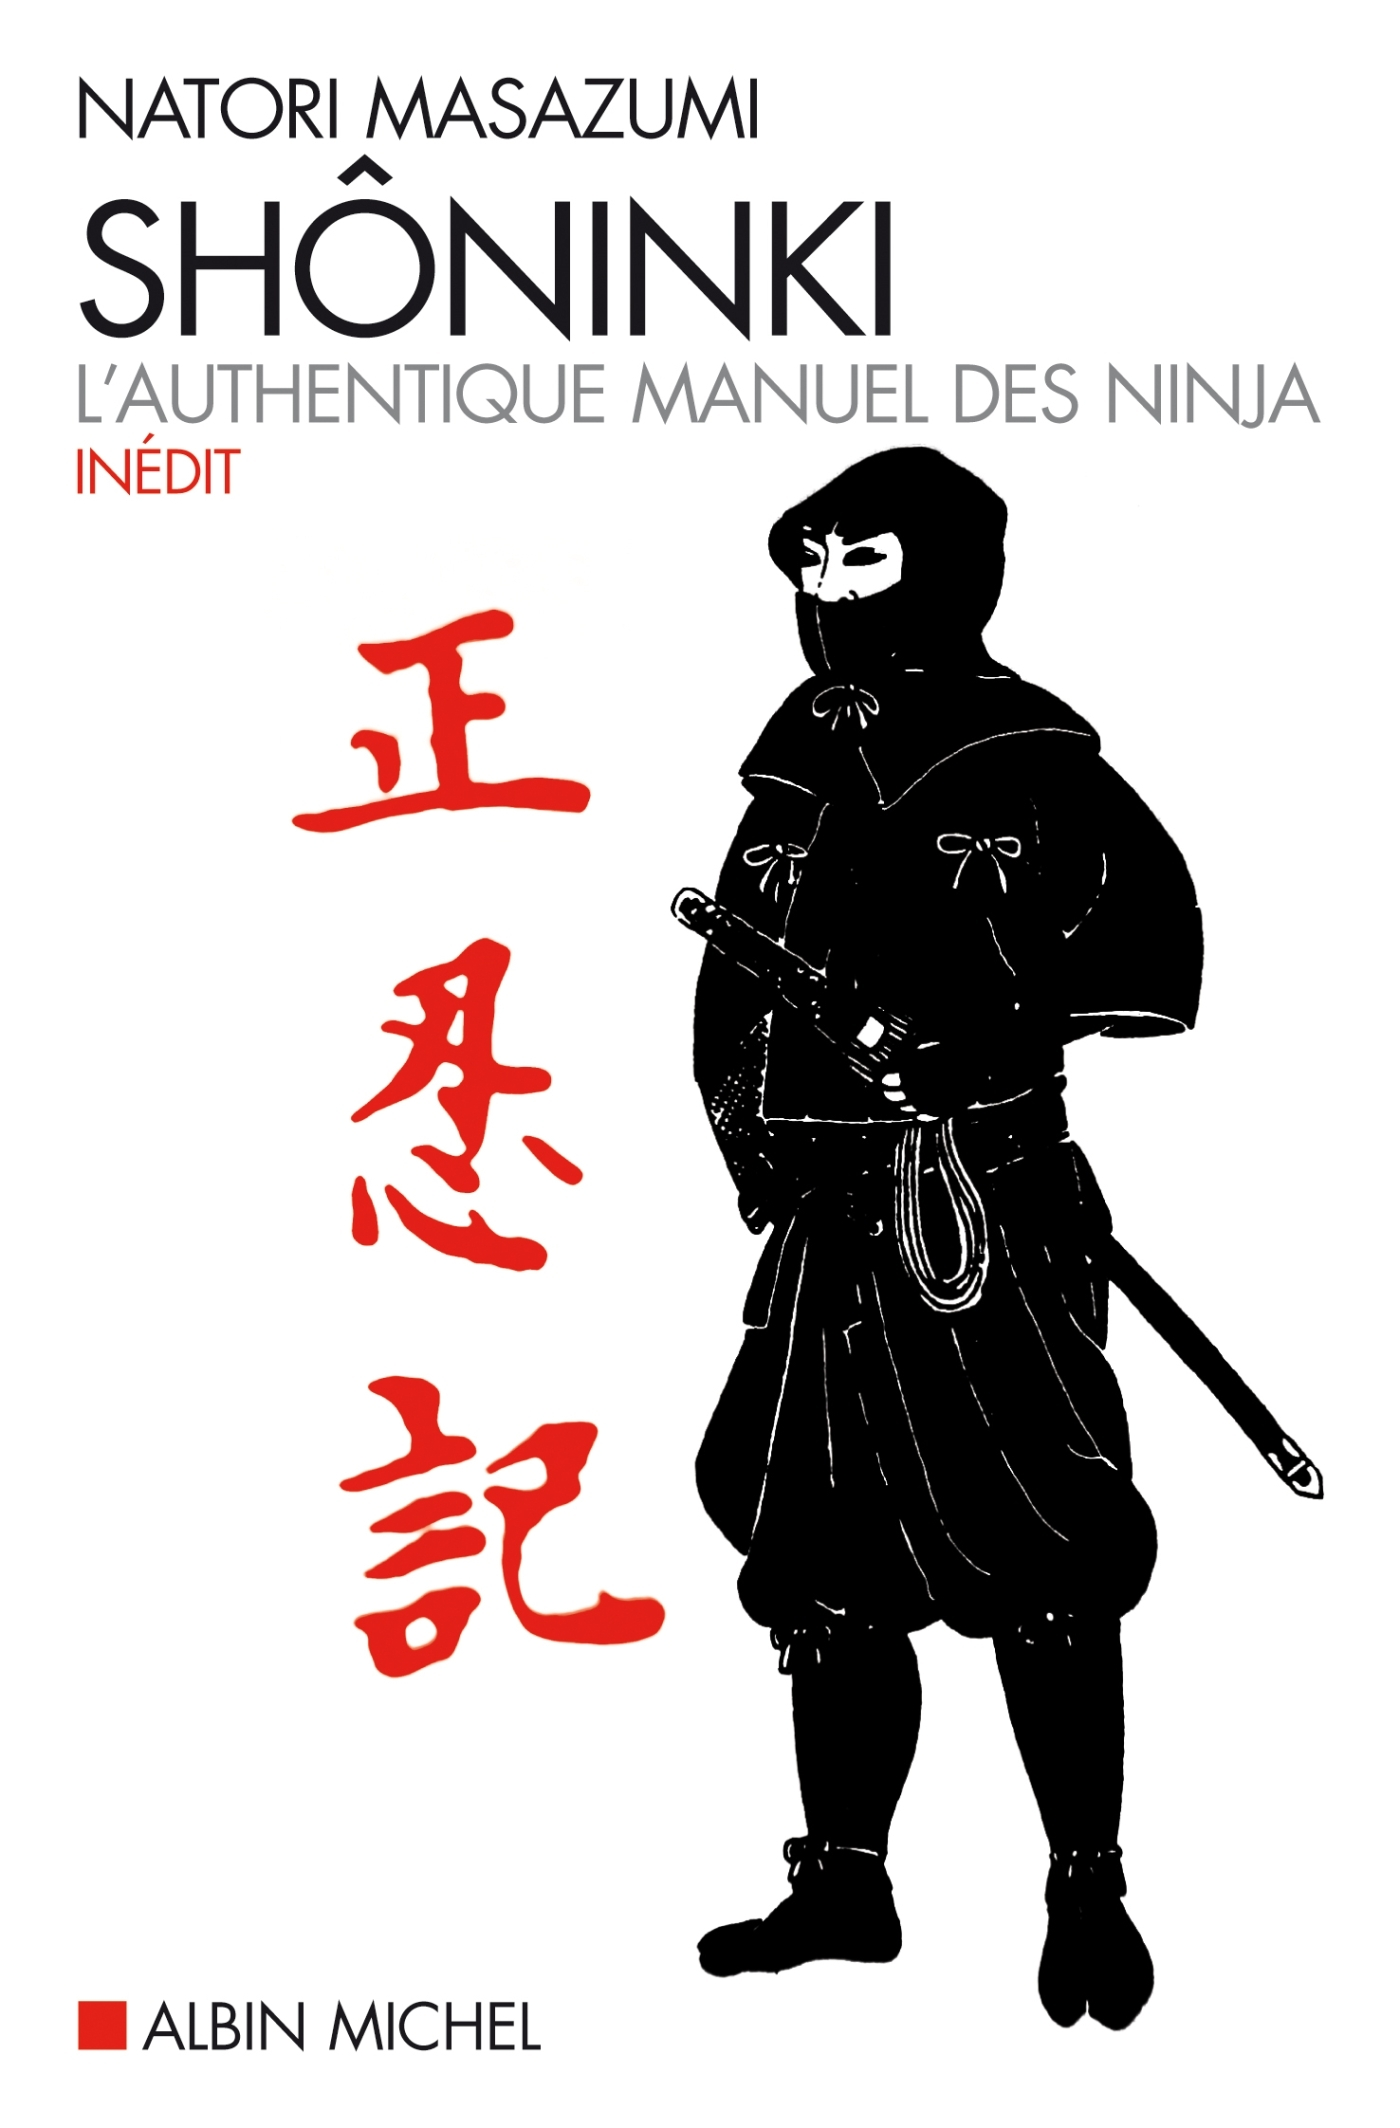 SHONINKI - L'AUTHENTIQUE MANUEL DES NINJA